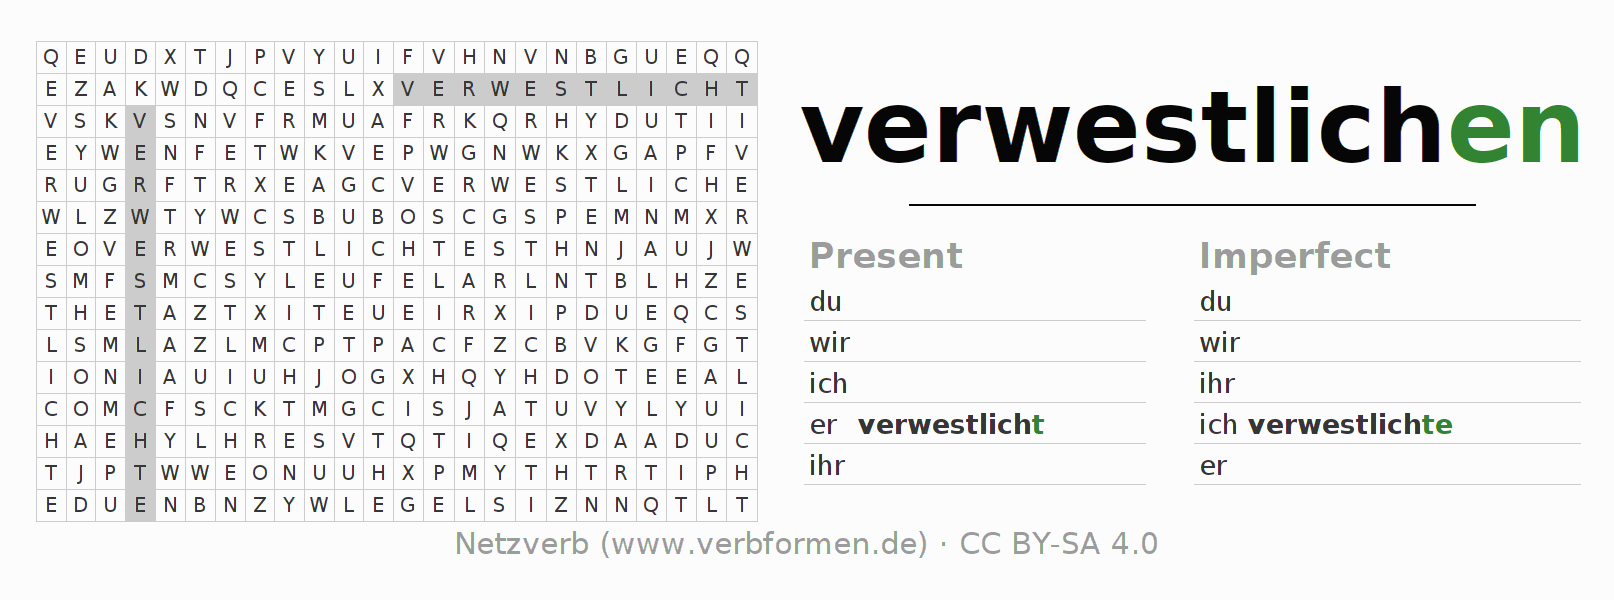 Word search puzzle for the conjugation of the verb verwestlichen